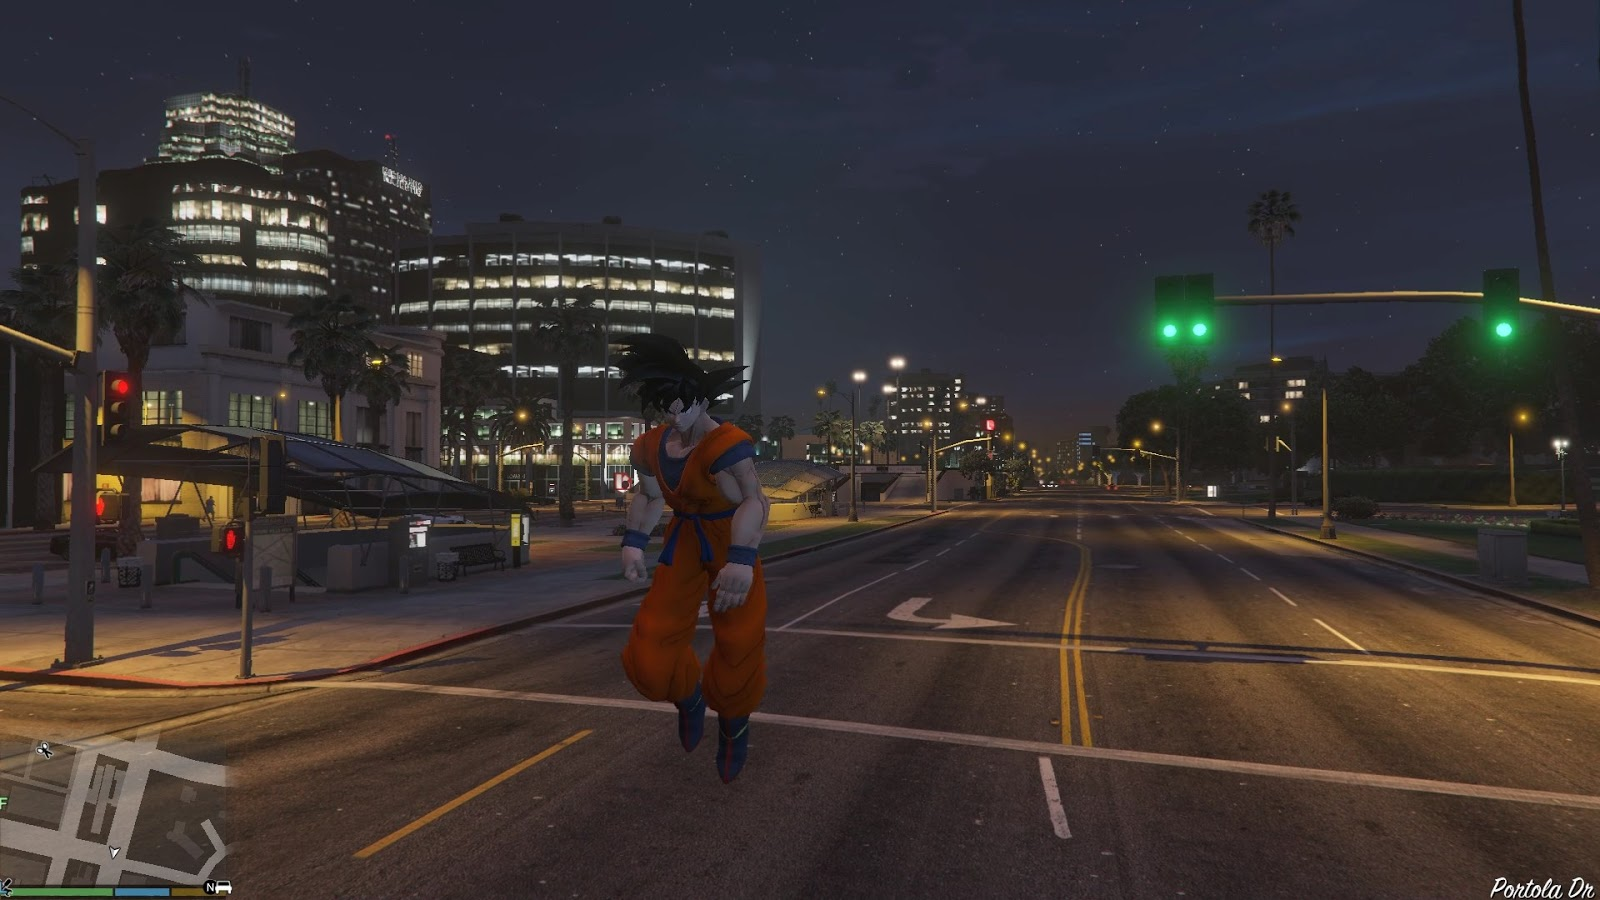 Grand Theft Auto V Dragon Ball Mod Allows Players To Control